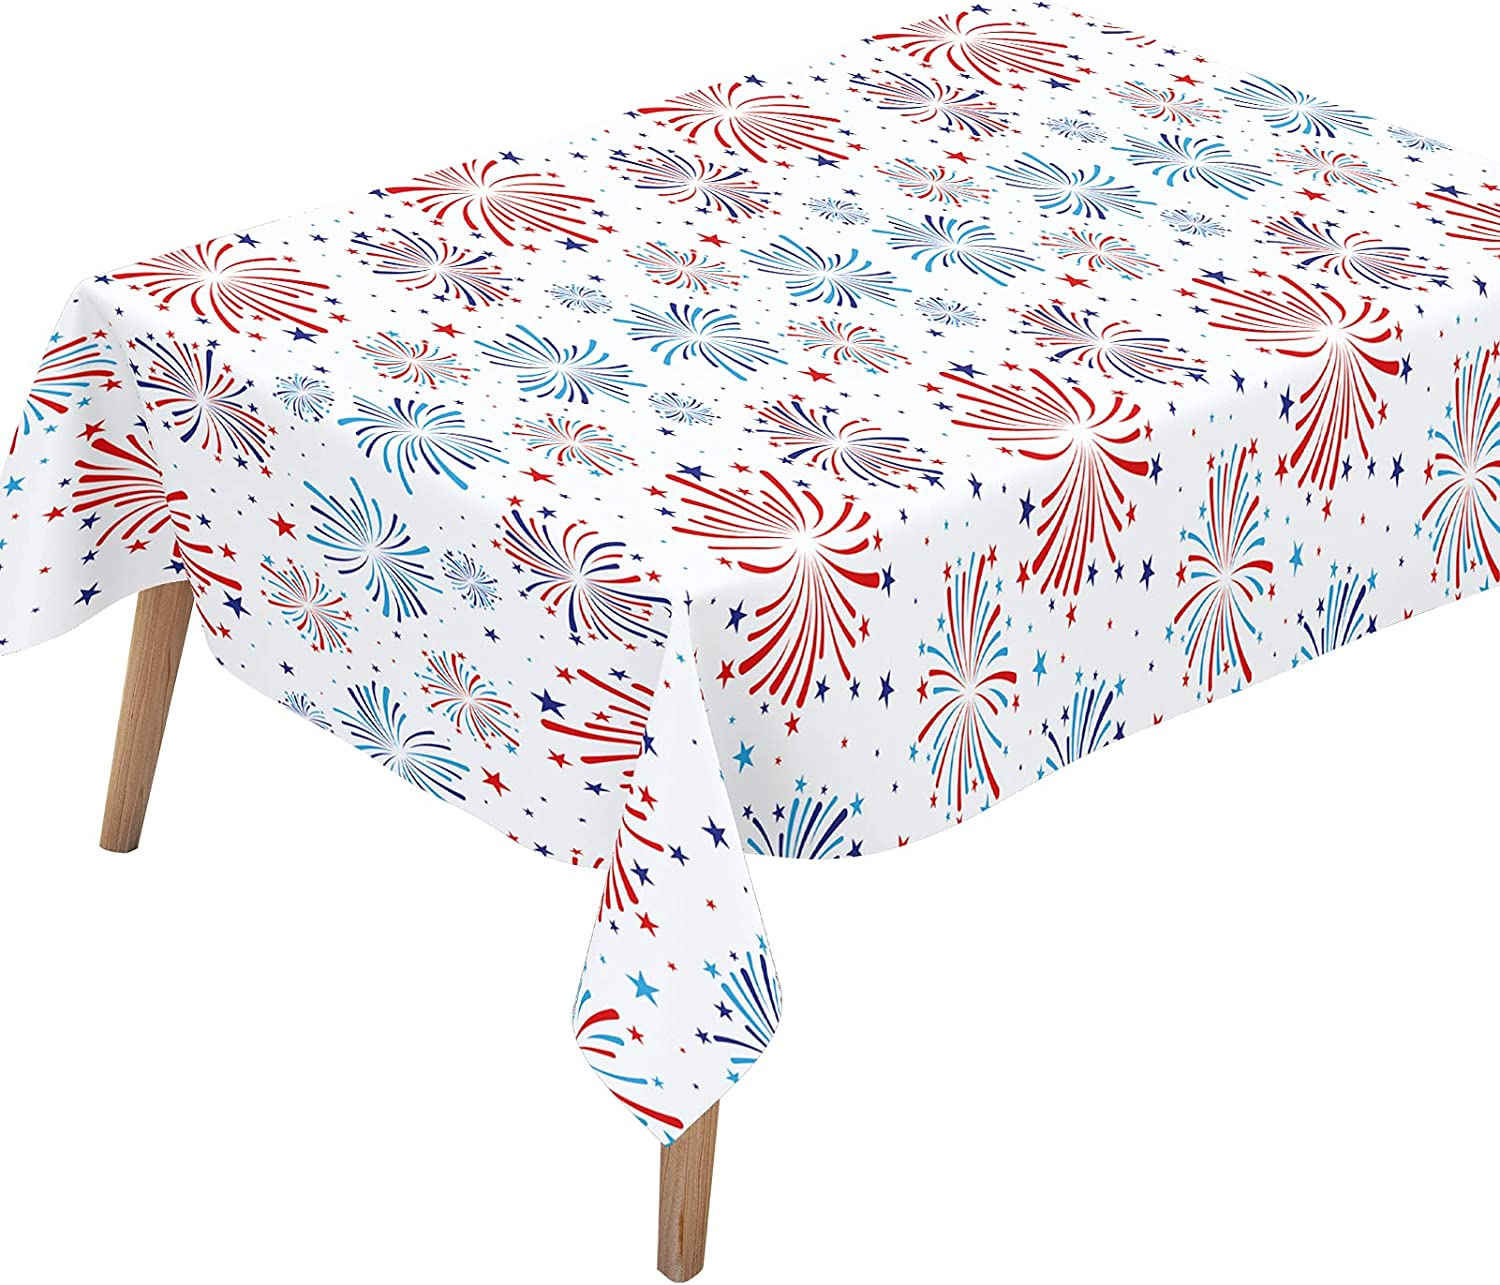 Dazonge Pack of 2 Patriotic Burst Tablecloth 54''x110'', Plastic 4th of July Table Cloths/Covers for Party Supplies, 4th of July Decor for Memorial Day, Independence Day or Any Patriotic Events